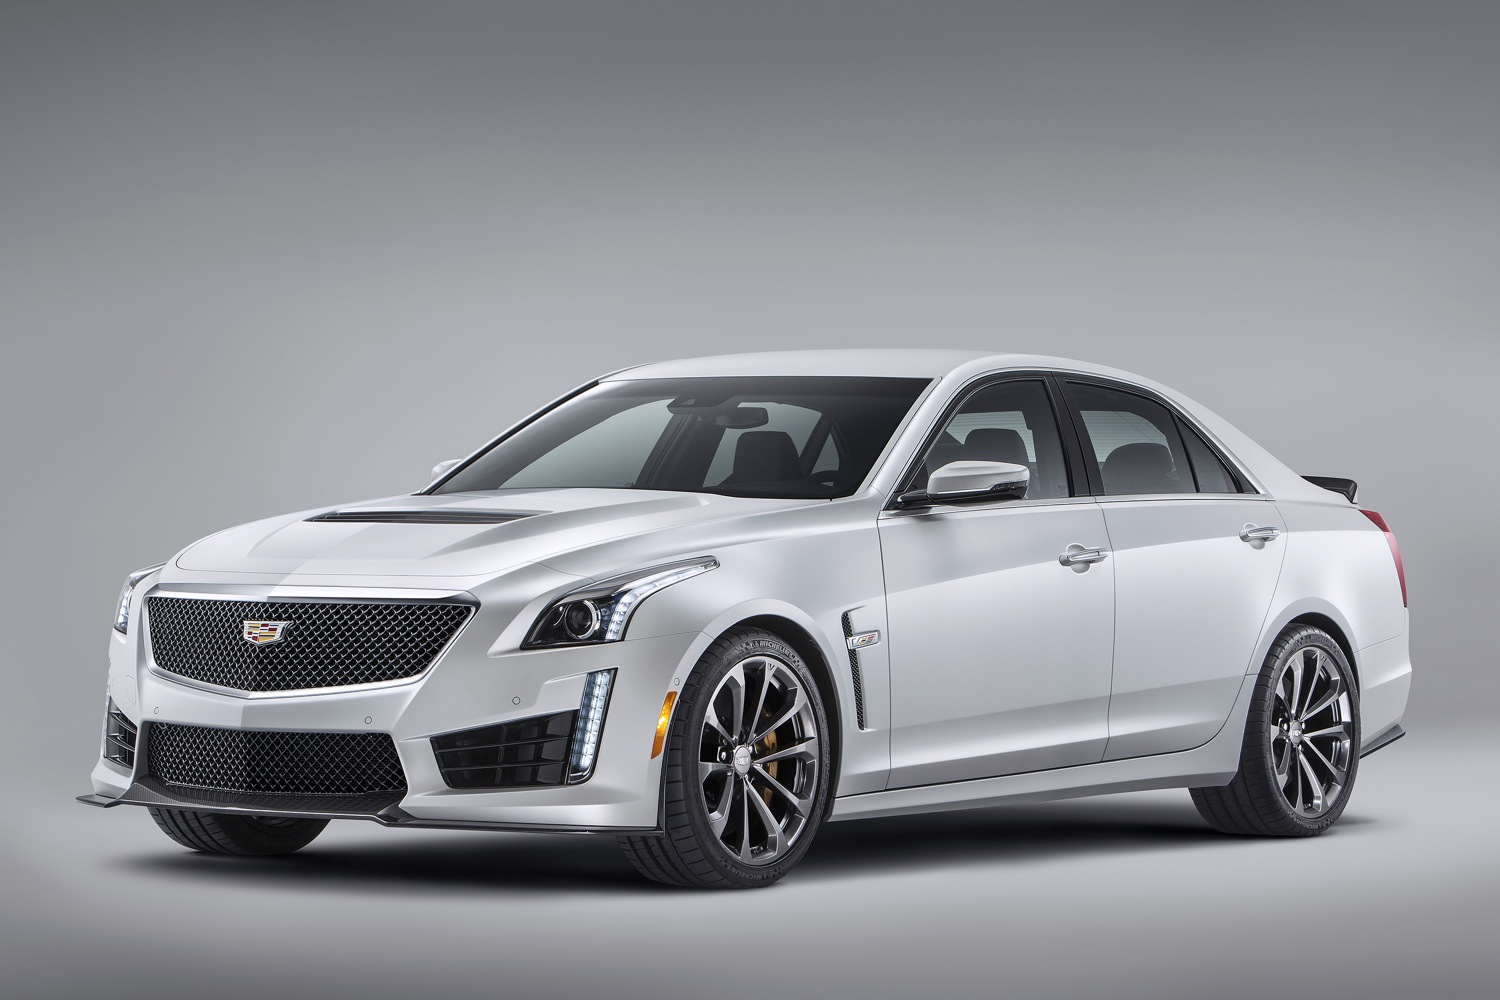 Modern Day Muscle Cars - Cadillac CTS-V